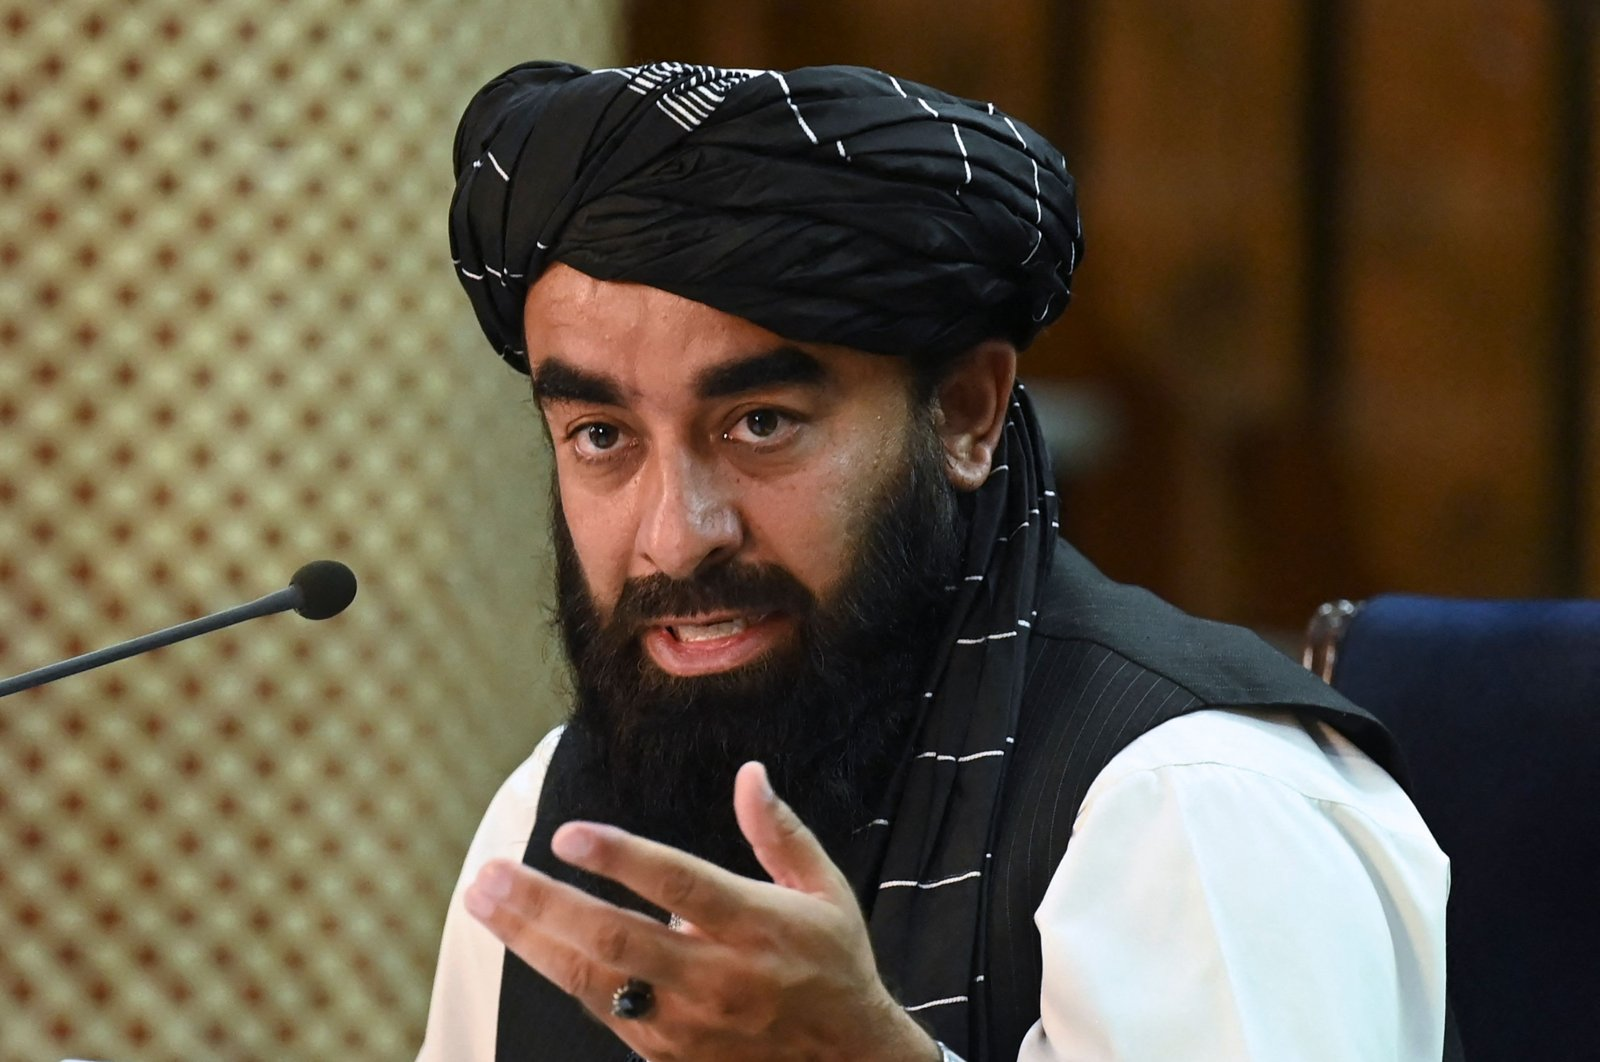 Taliban spokesperson Zabihullah Mujahid addresses a press conference in Kabul, Afghanistan, Sept. 7, 2021. (AFP Photo)